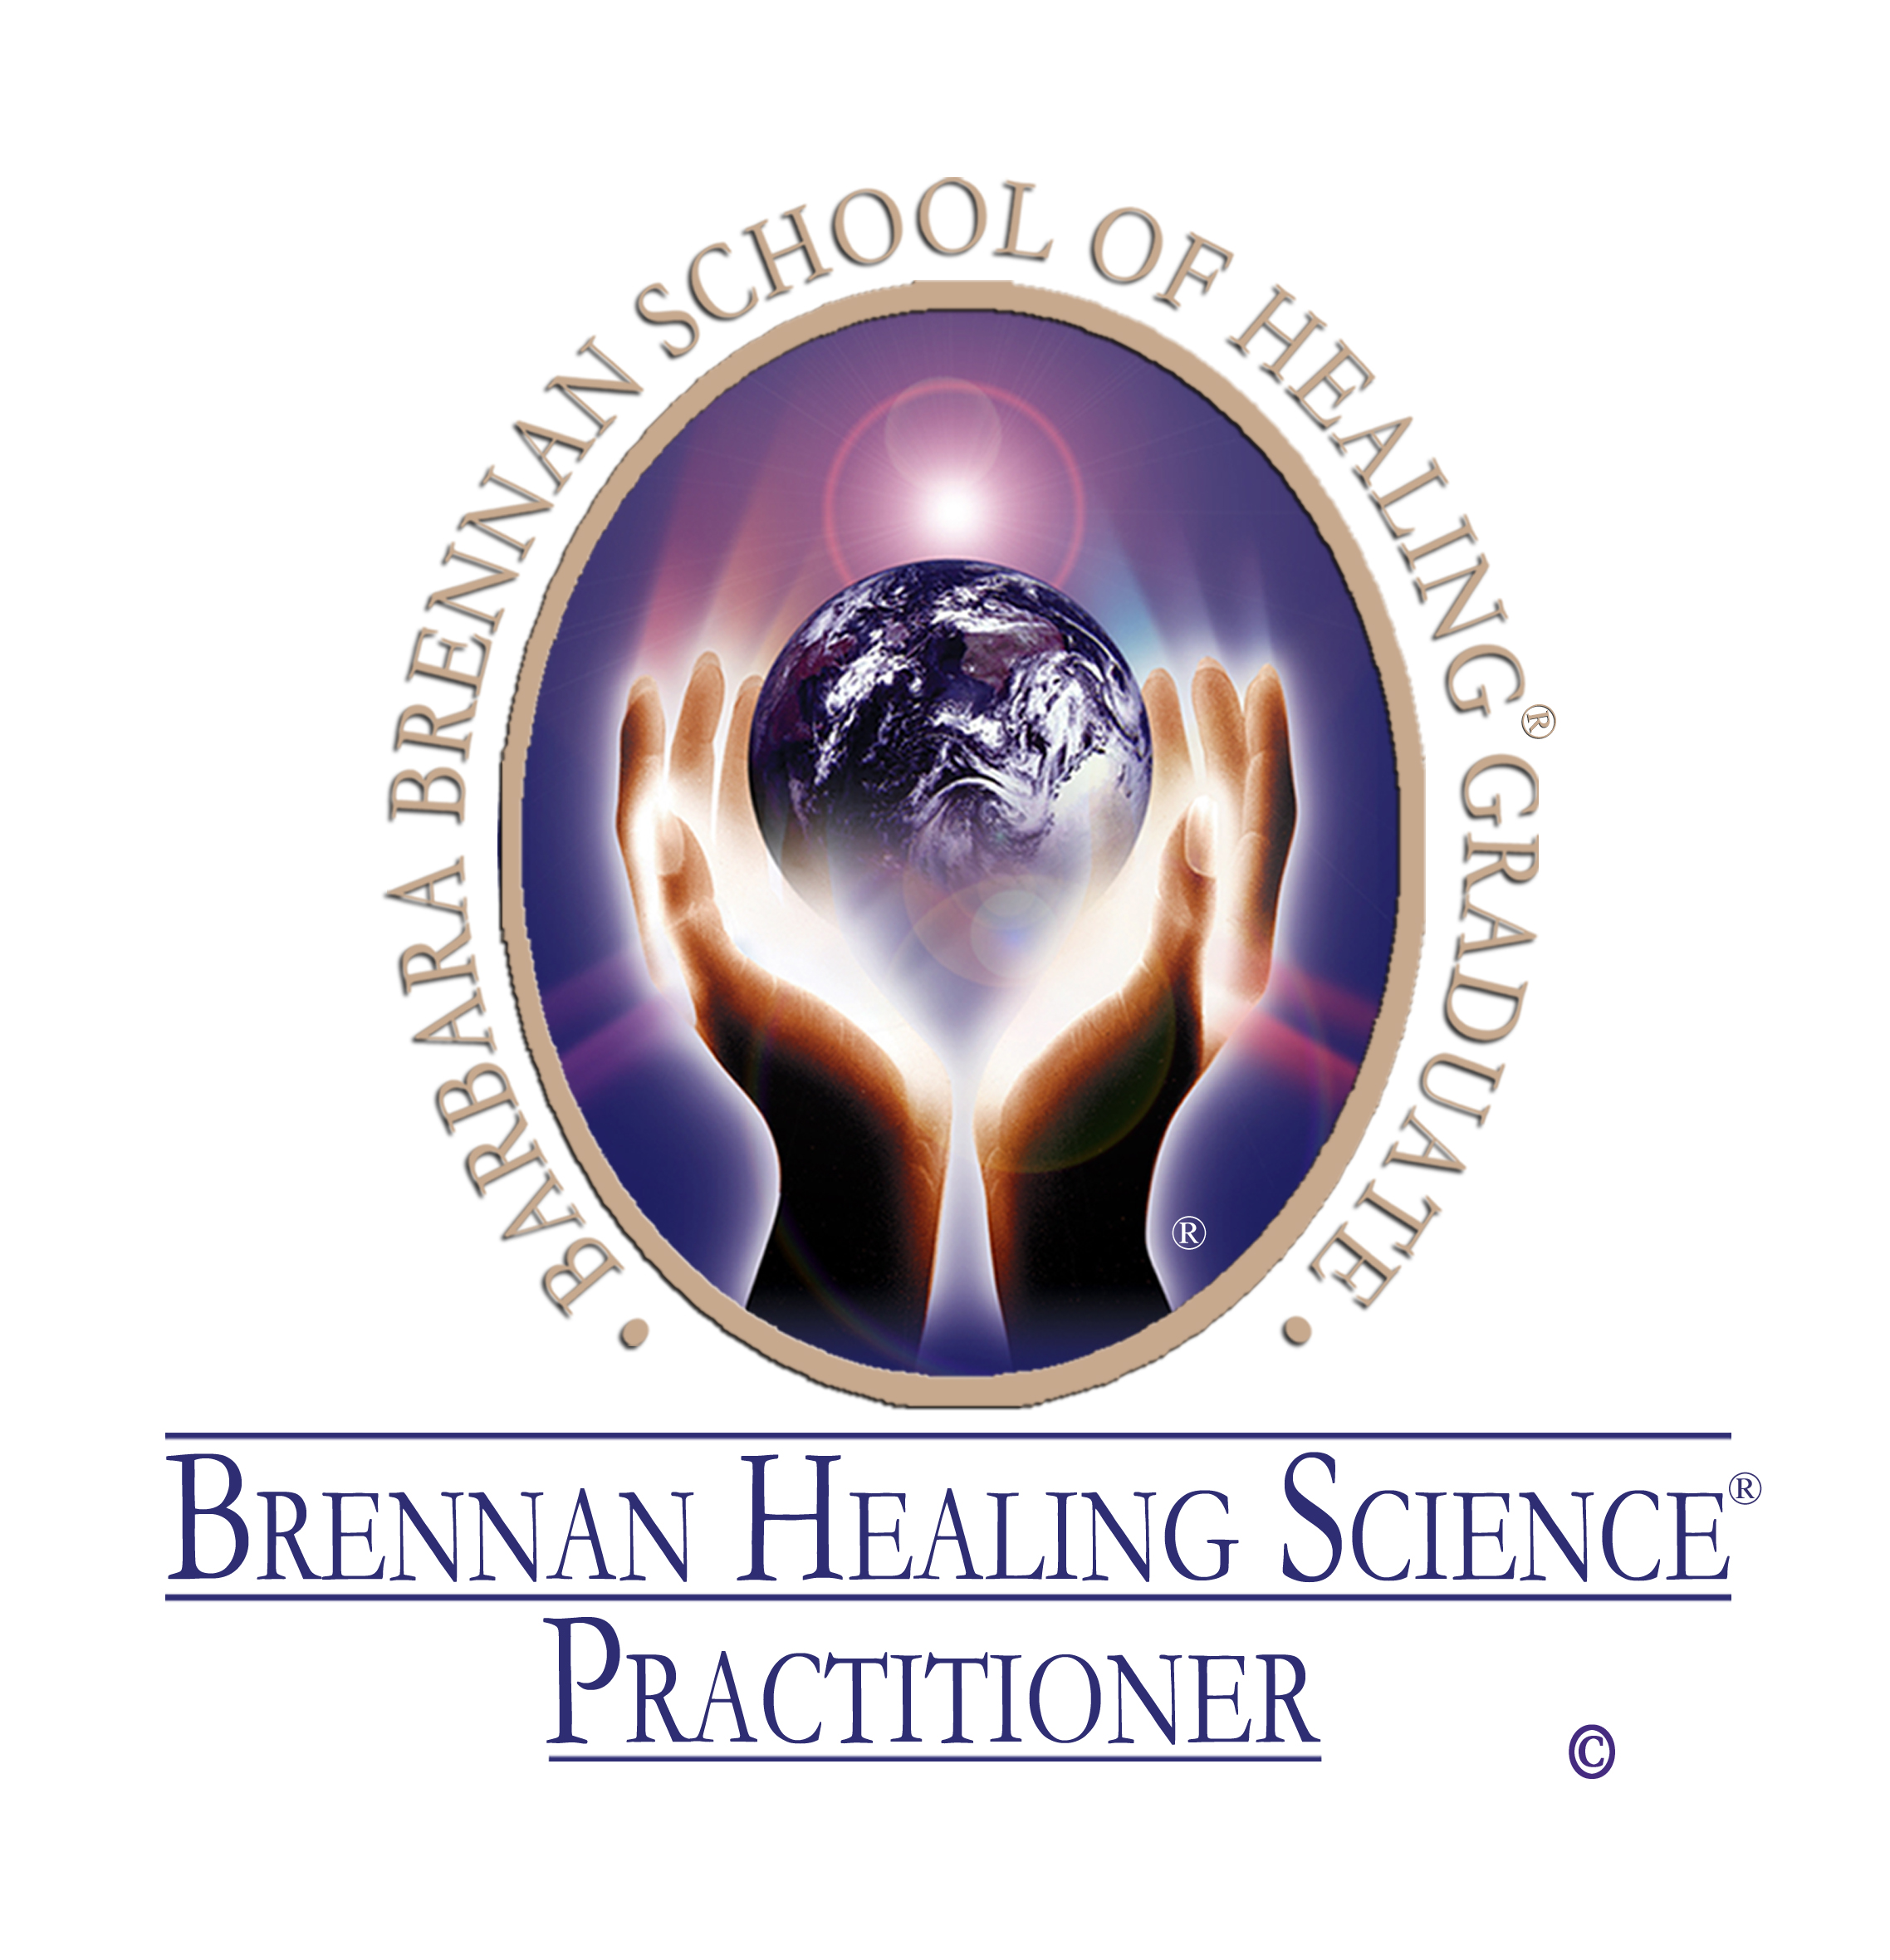 Brennan Healing Science Practitioner